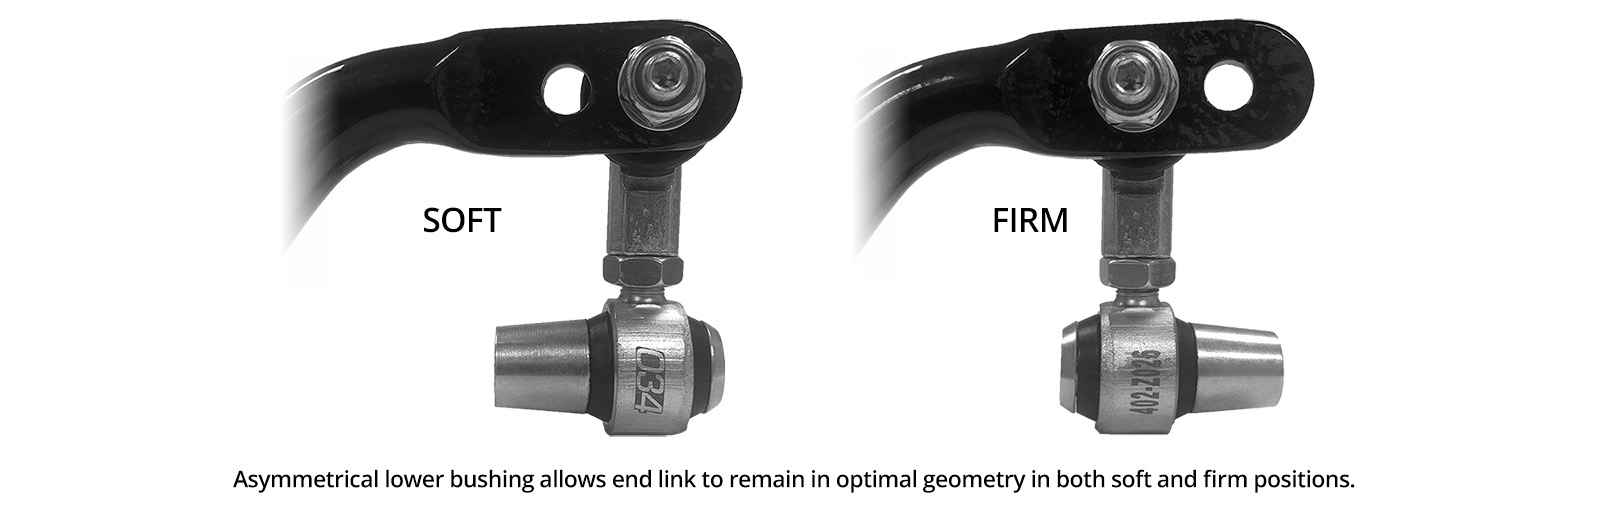 The asymmetrical design of the lower bushing allows the end link to maintain proper vertical geometry in both the soft and firm positions on the sway bar.